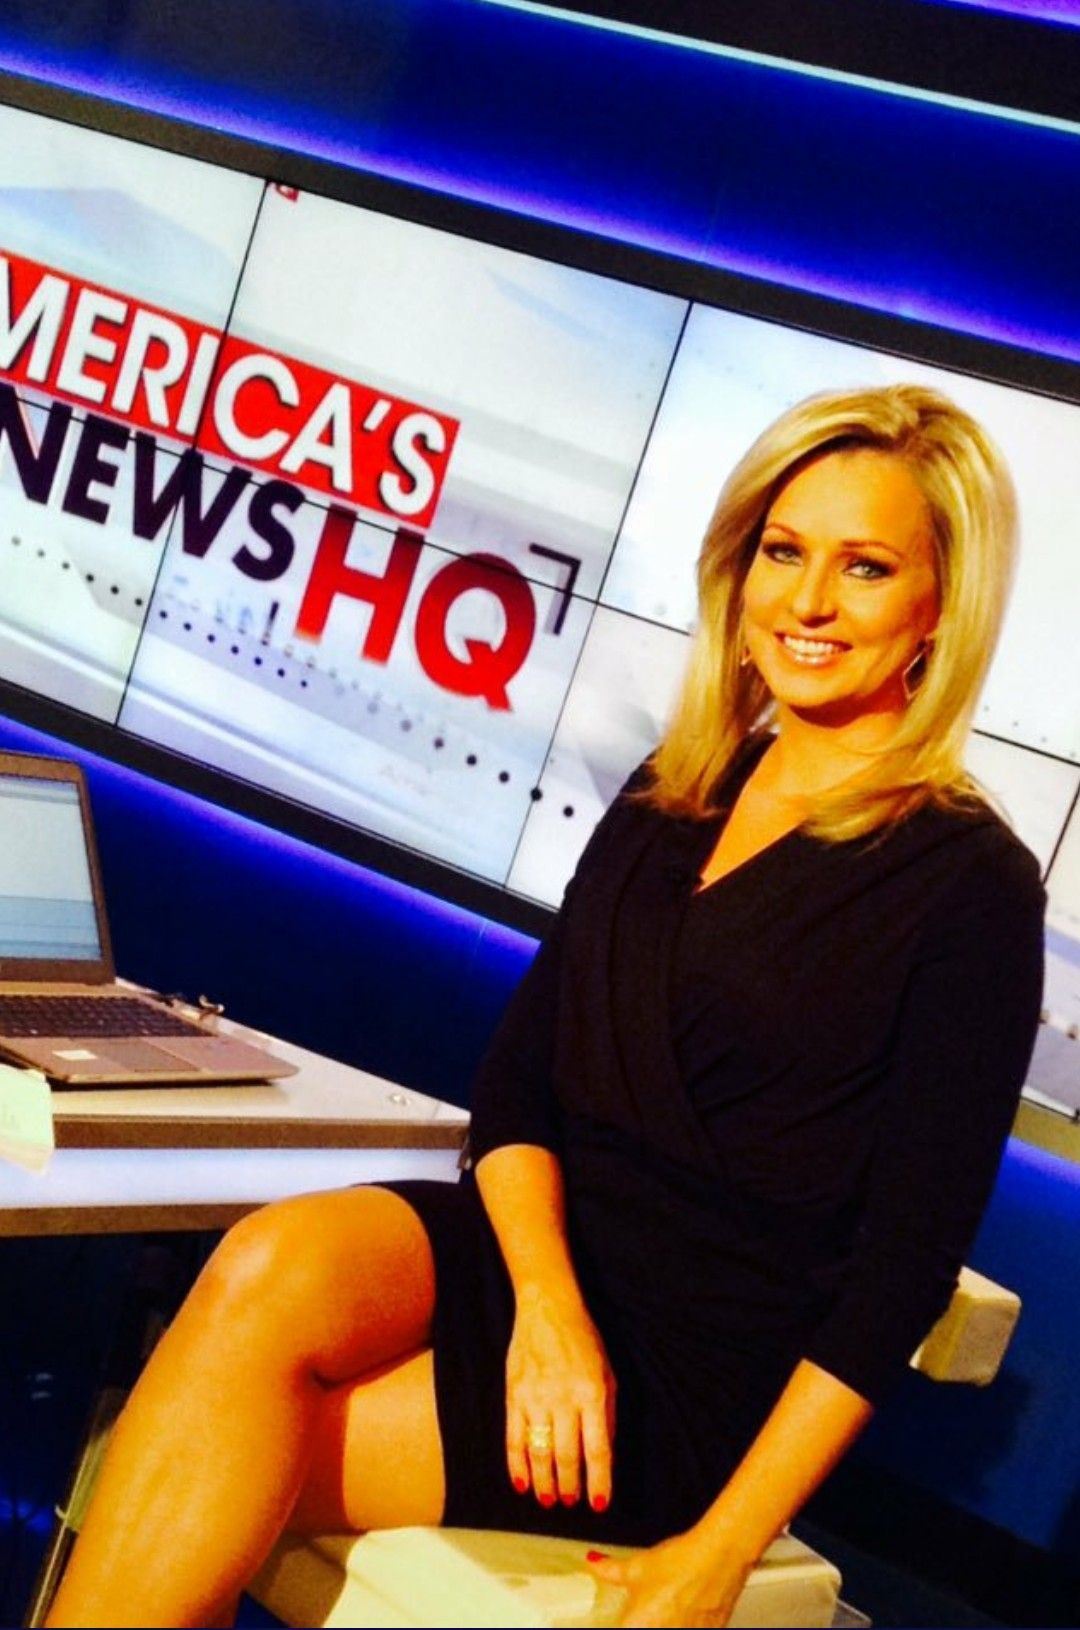 Sandra Smith sexy news anchor